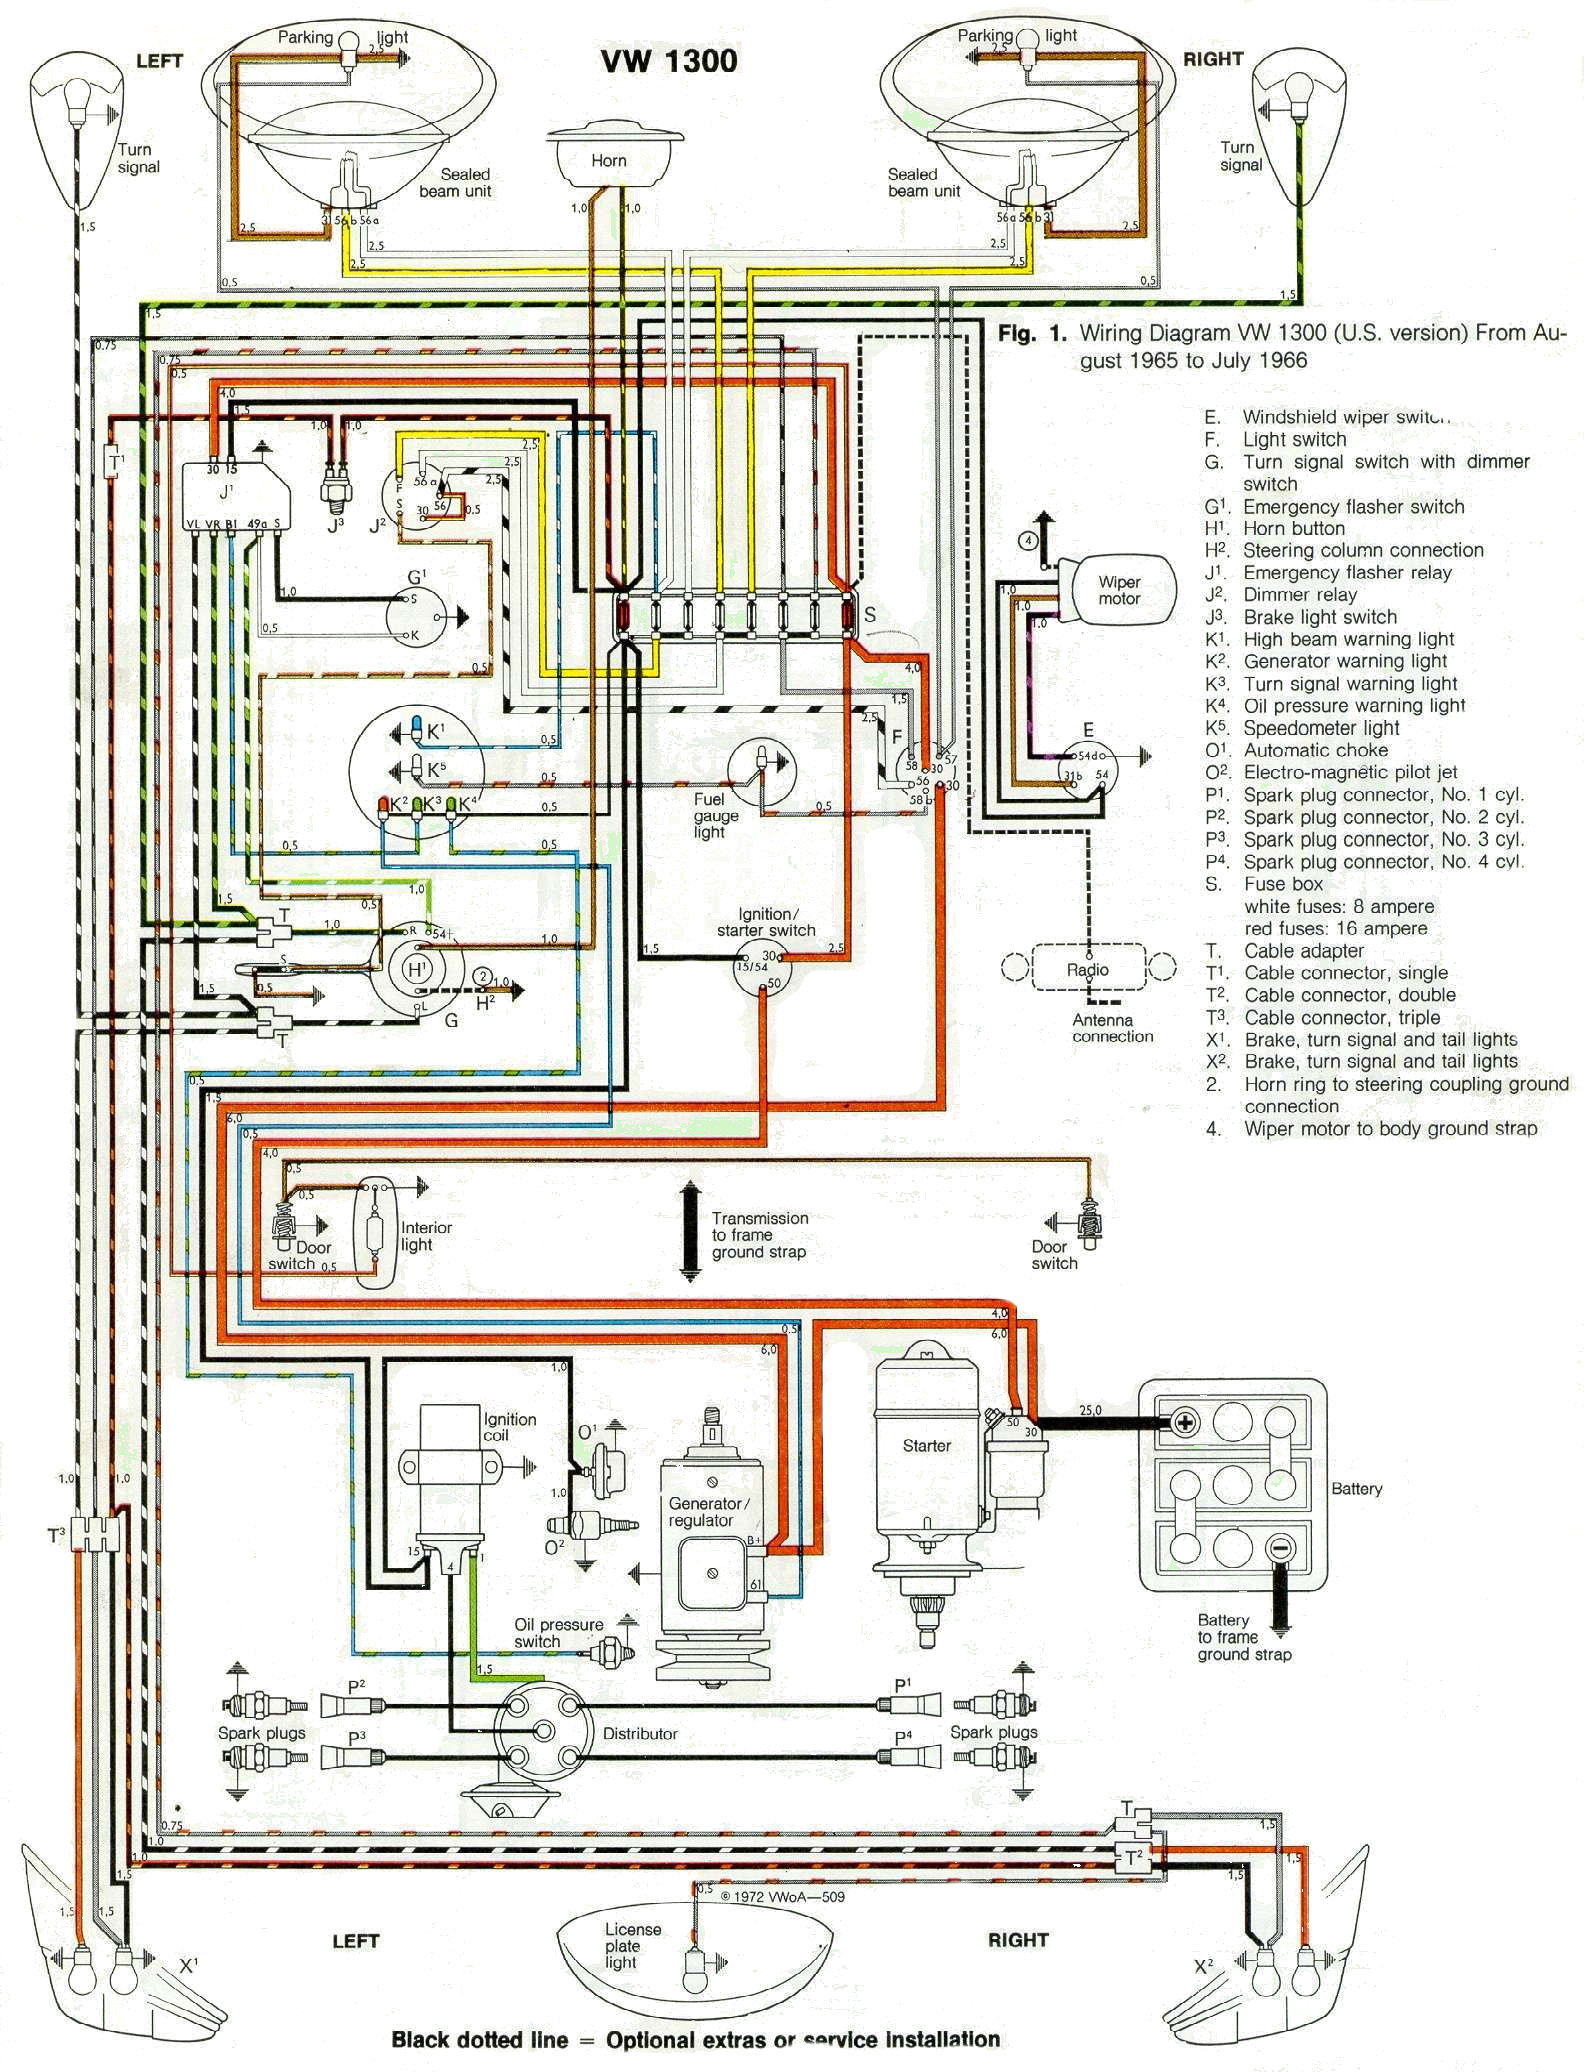 1966 volkswagen wiring diagram - diagram design sources cable-piano -  cable-piano.nius-icbosa.it  diagram database - nius-icbosa.it